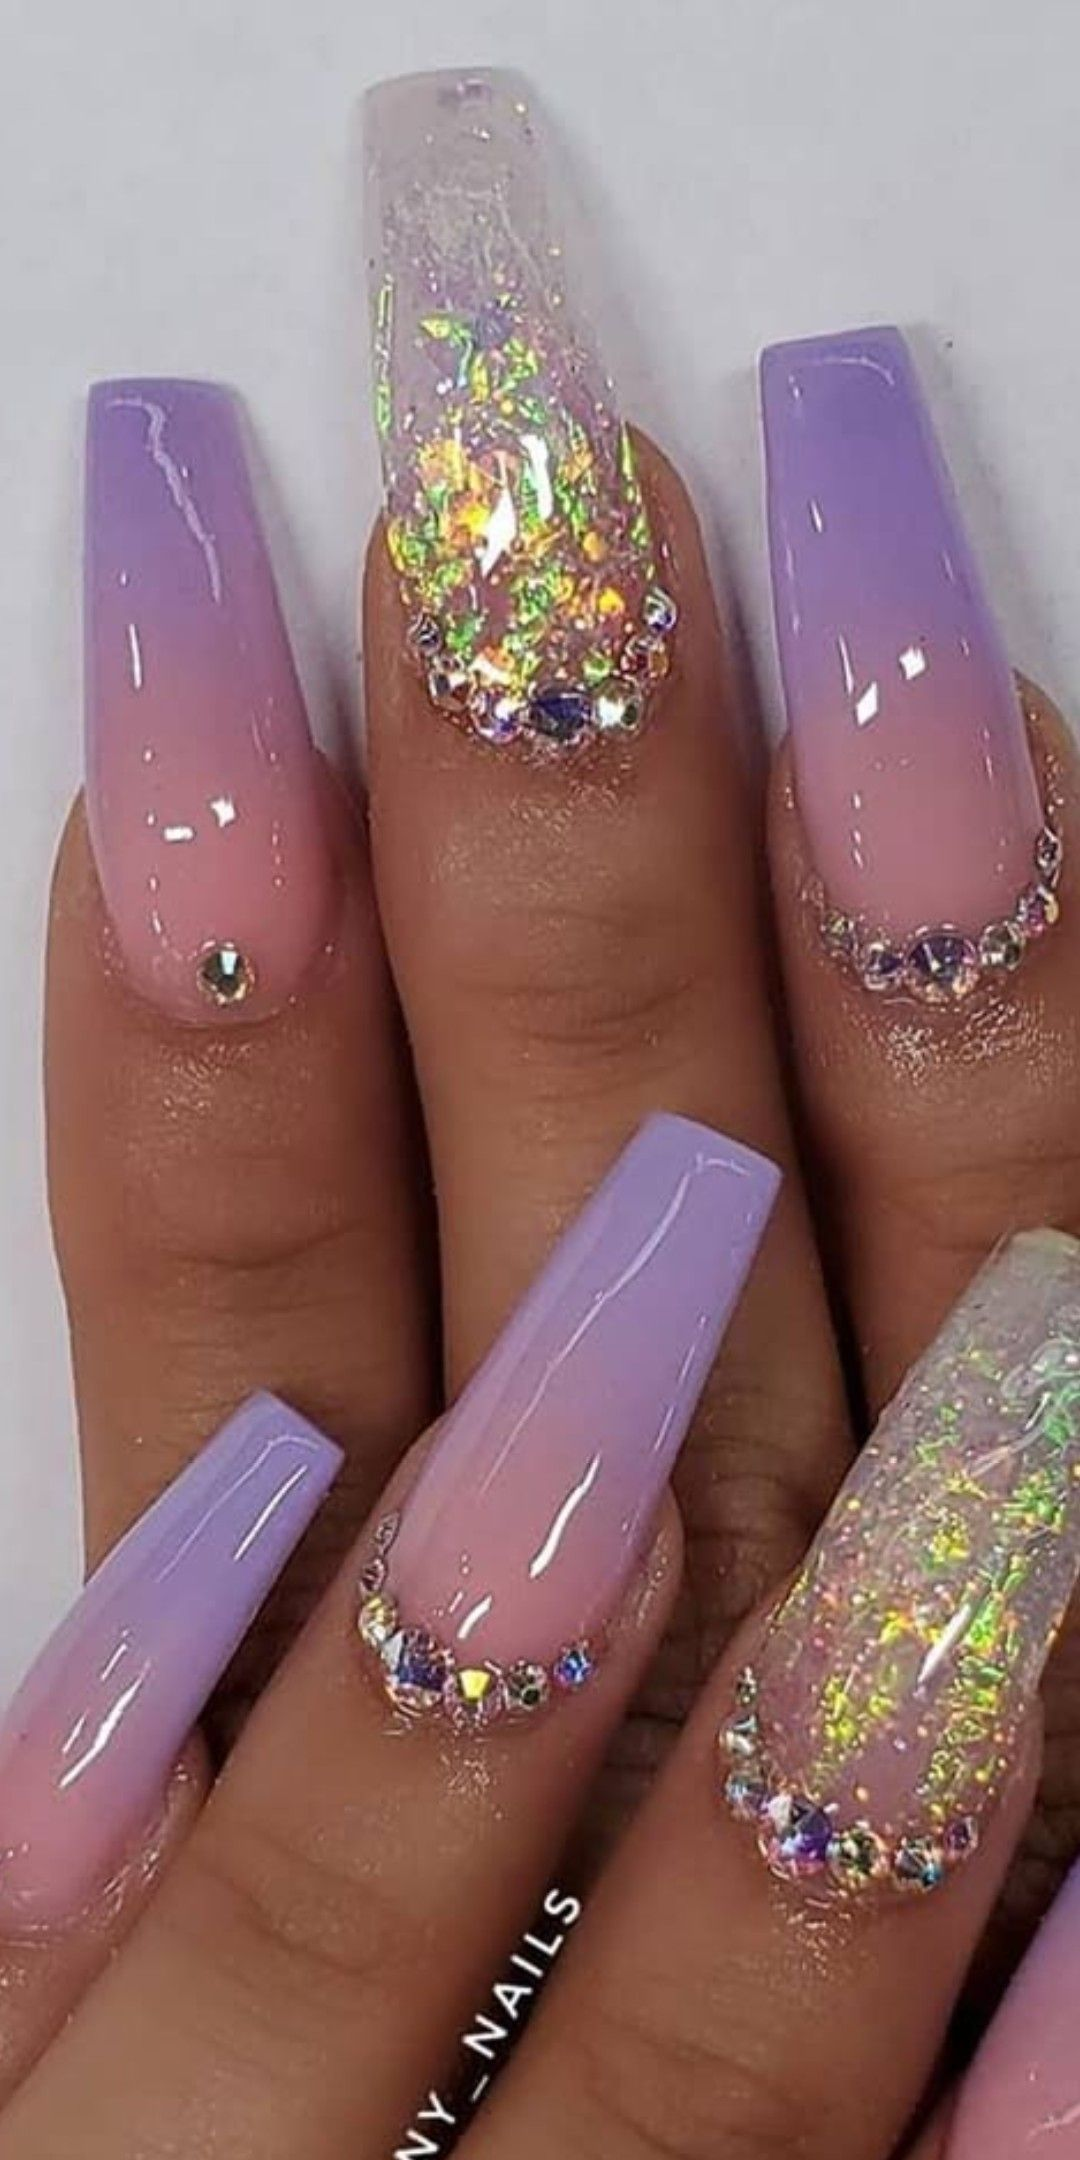 like what you see?✨ follow me for more: skienotsky ✨ #AcrylicNailsOmbre